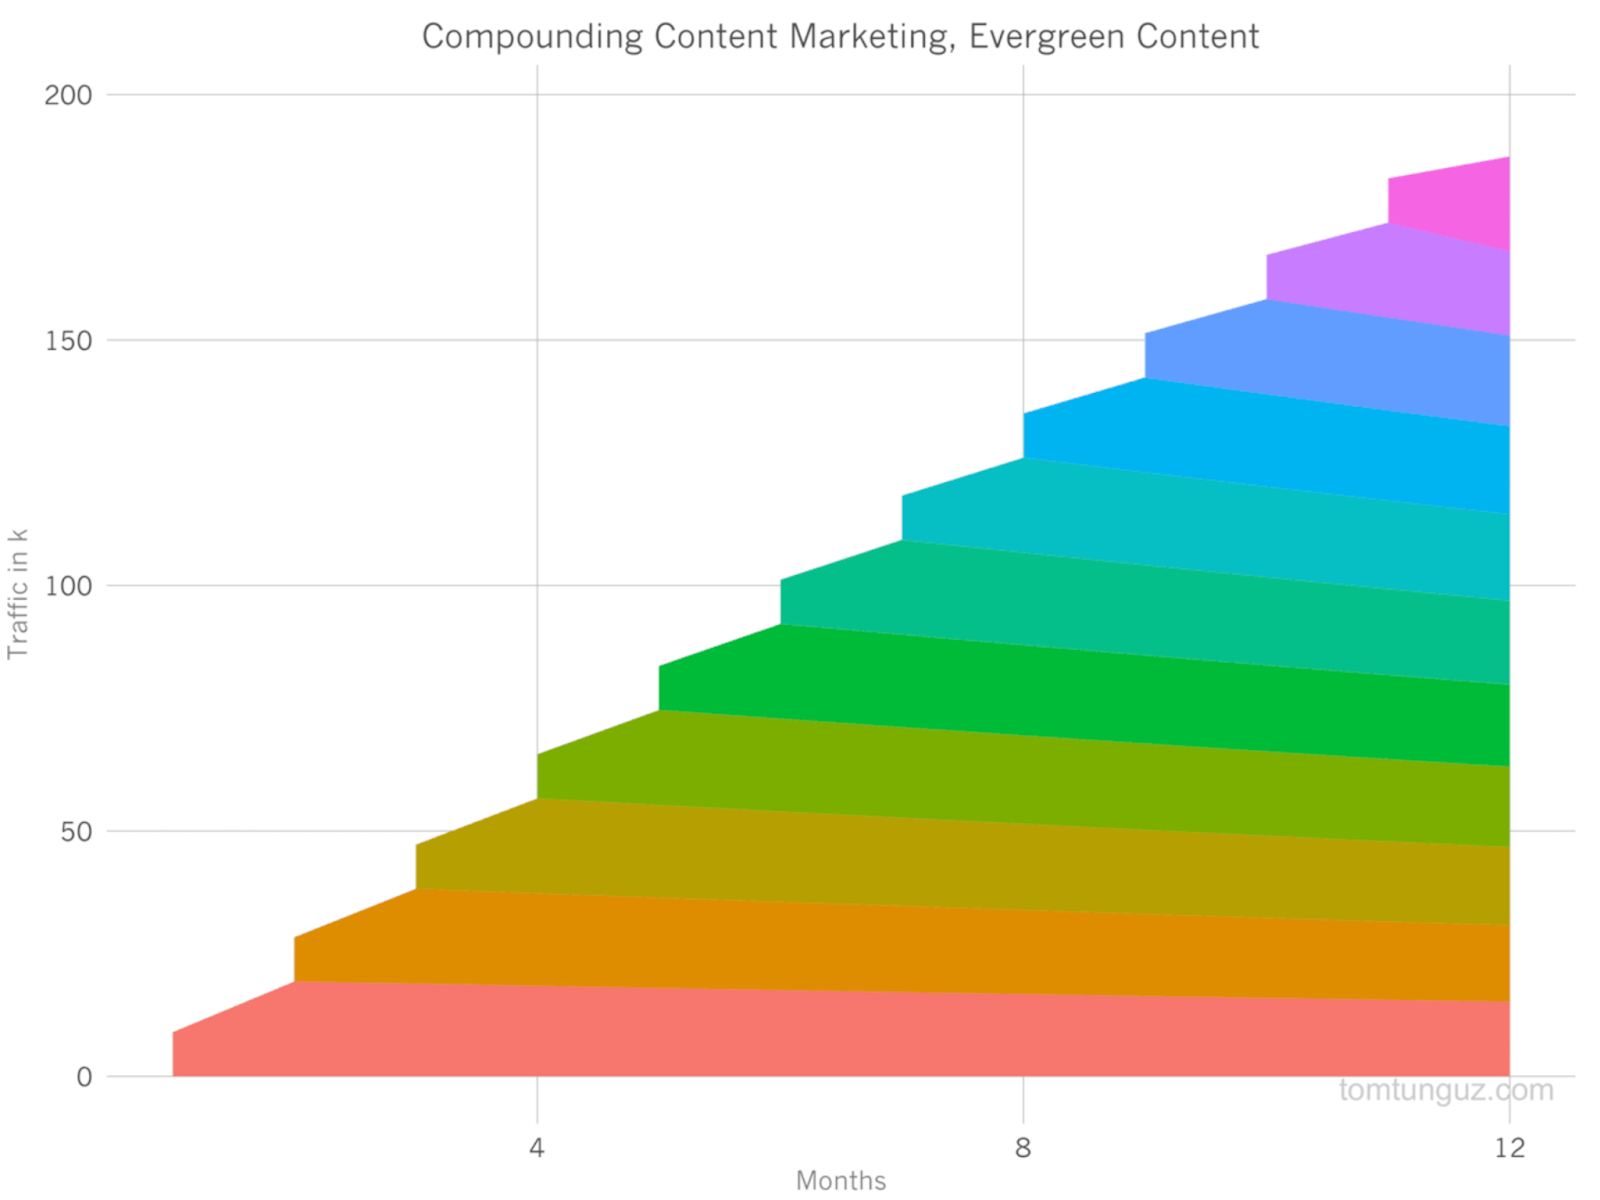 Compounding content marketing and evergreen content with a colorful graph.